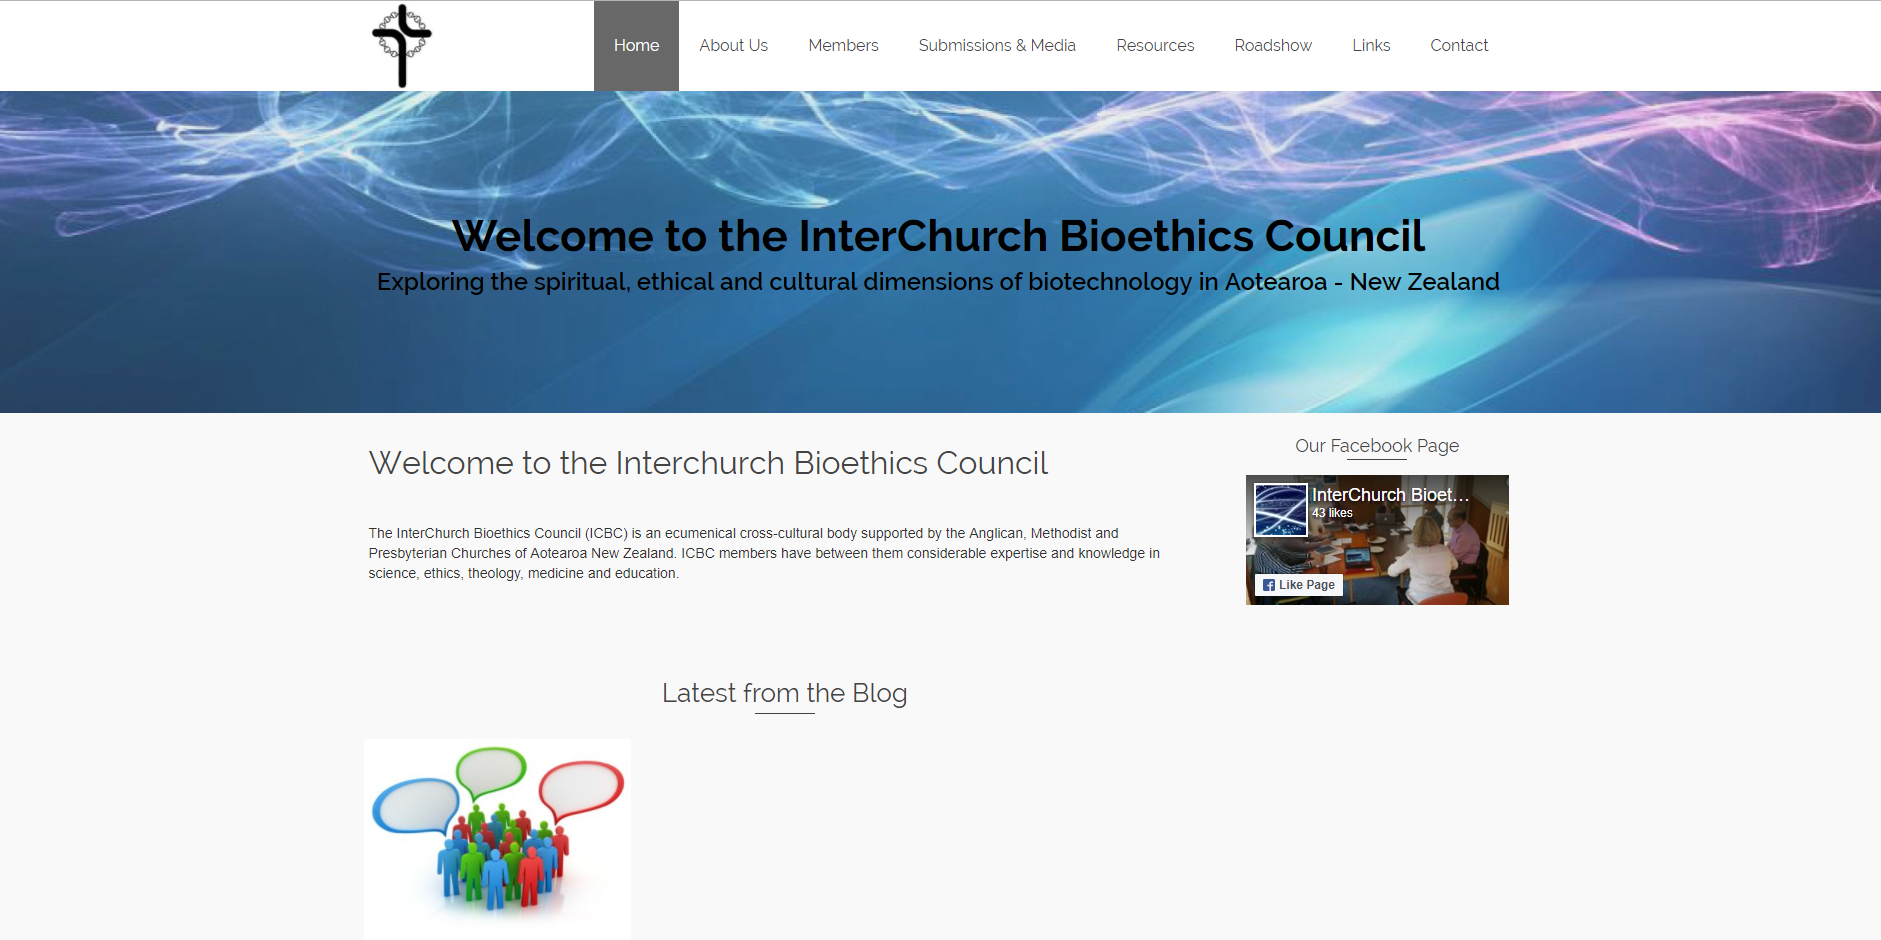 Inter Church Bioethics Council